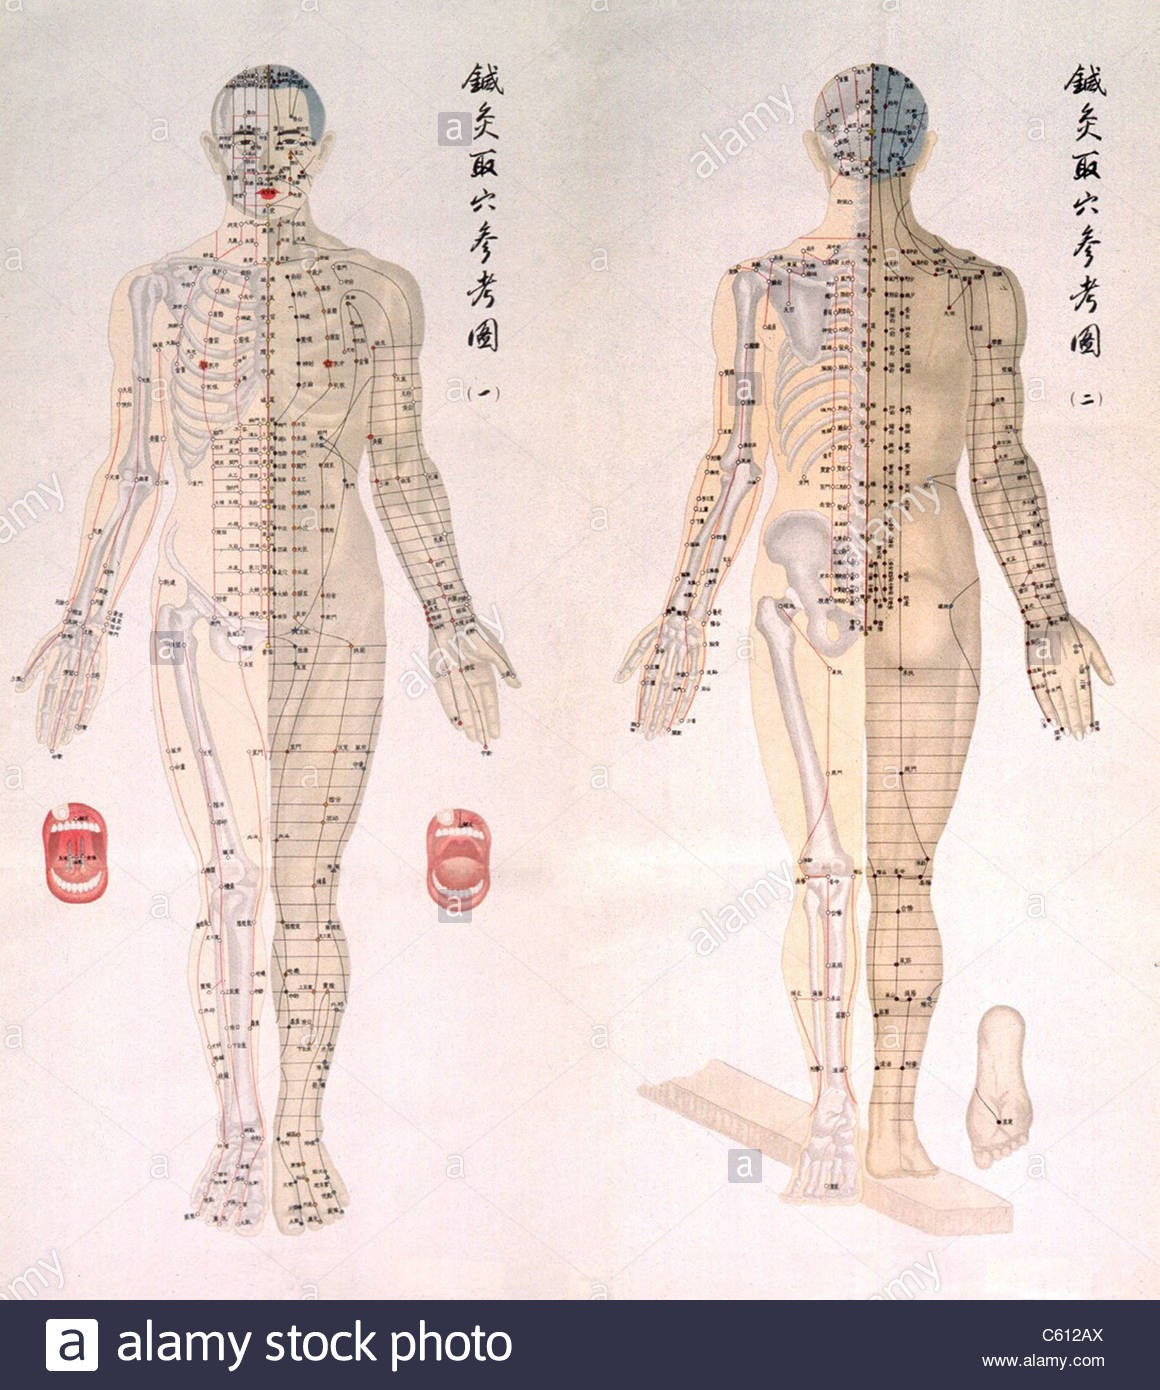 Chinese Traditional Acupuncture Diagram